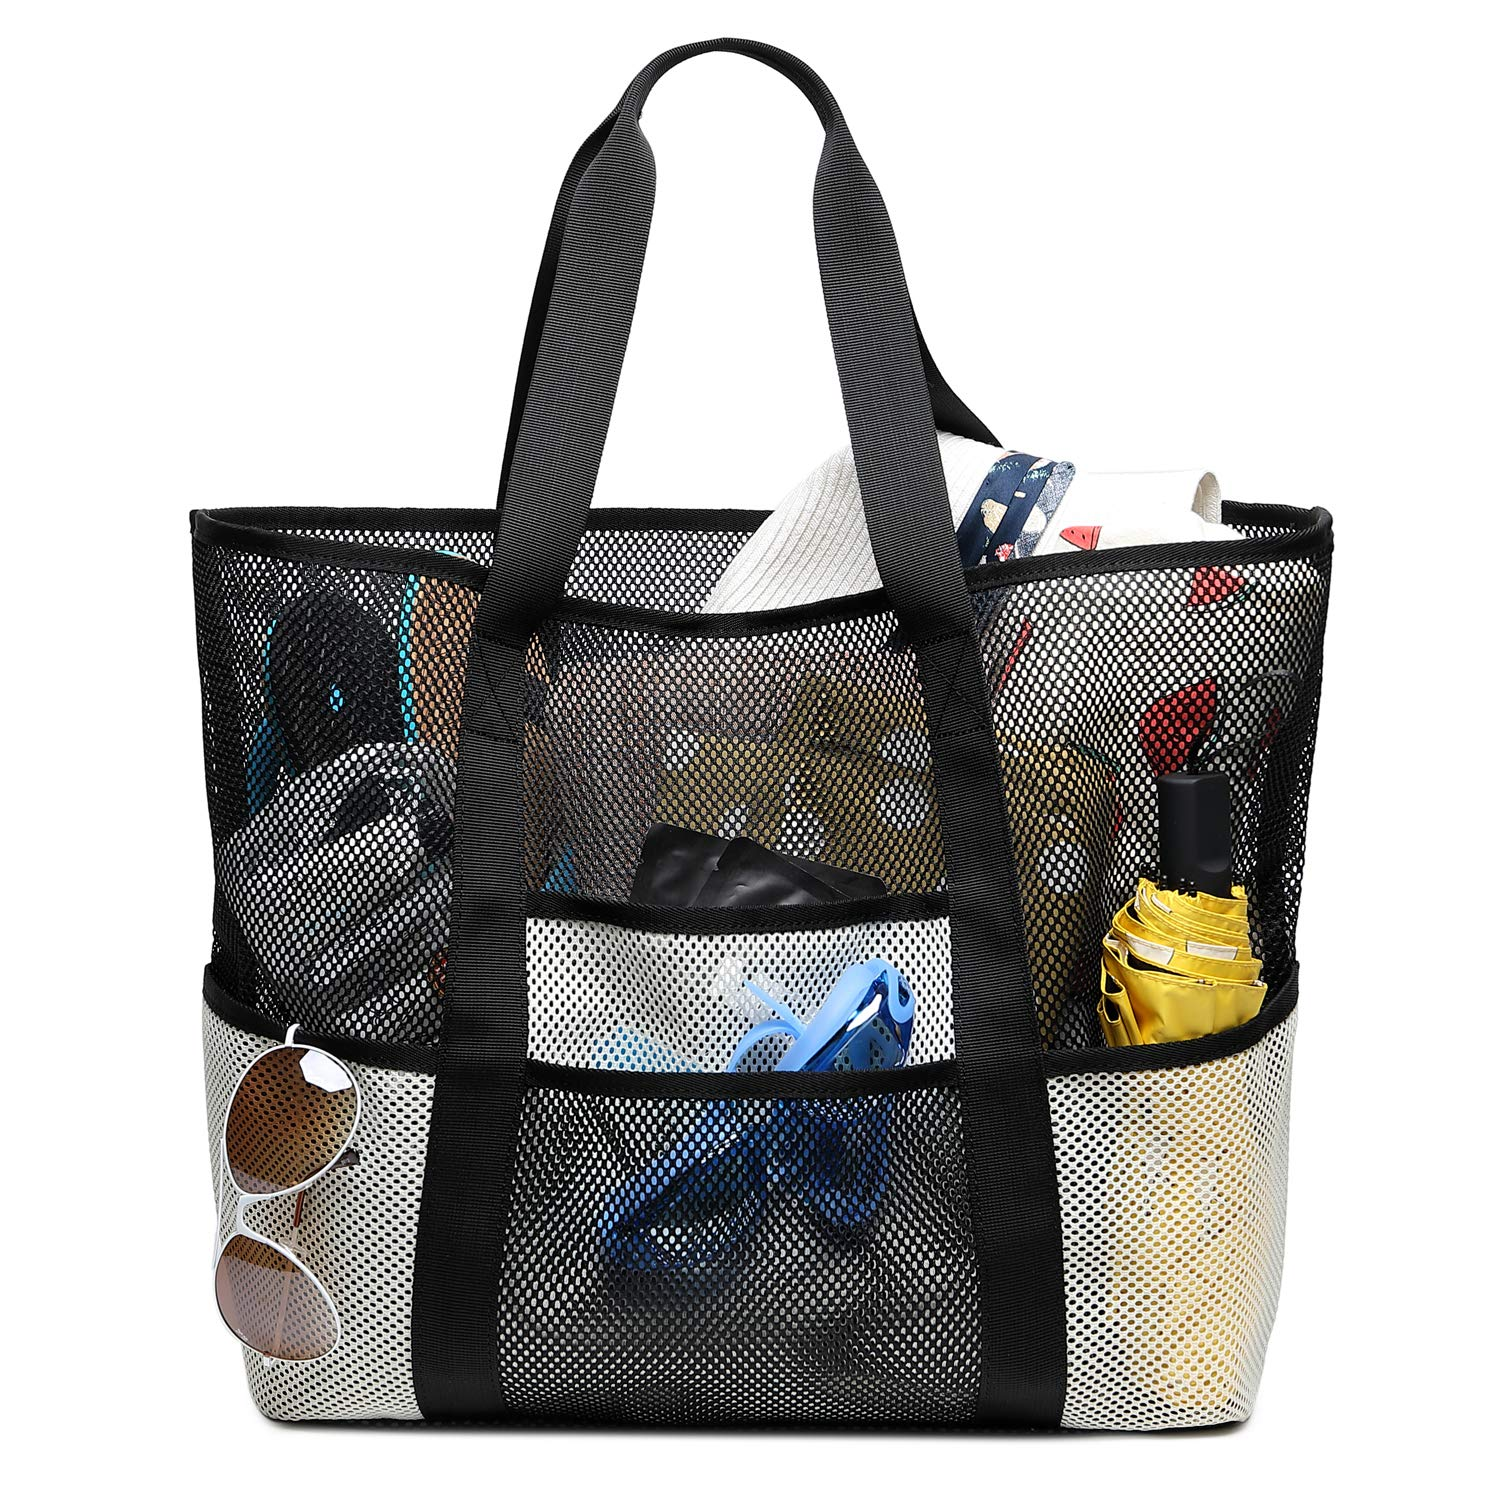 Large Beach Bag Bertasche Mesh Beach Tote Toy Tote Bag with 8 Pockets for Summer,Swimming,Shopping(Black/White)